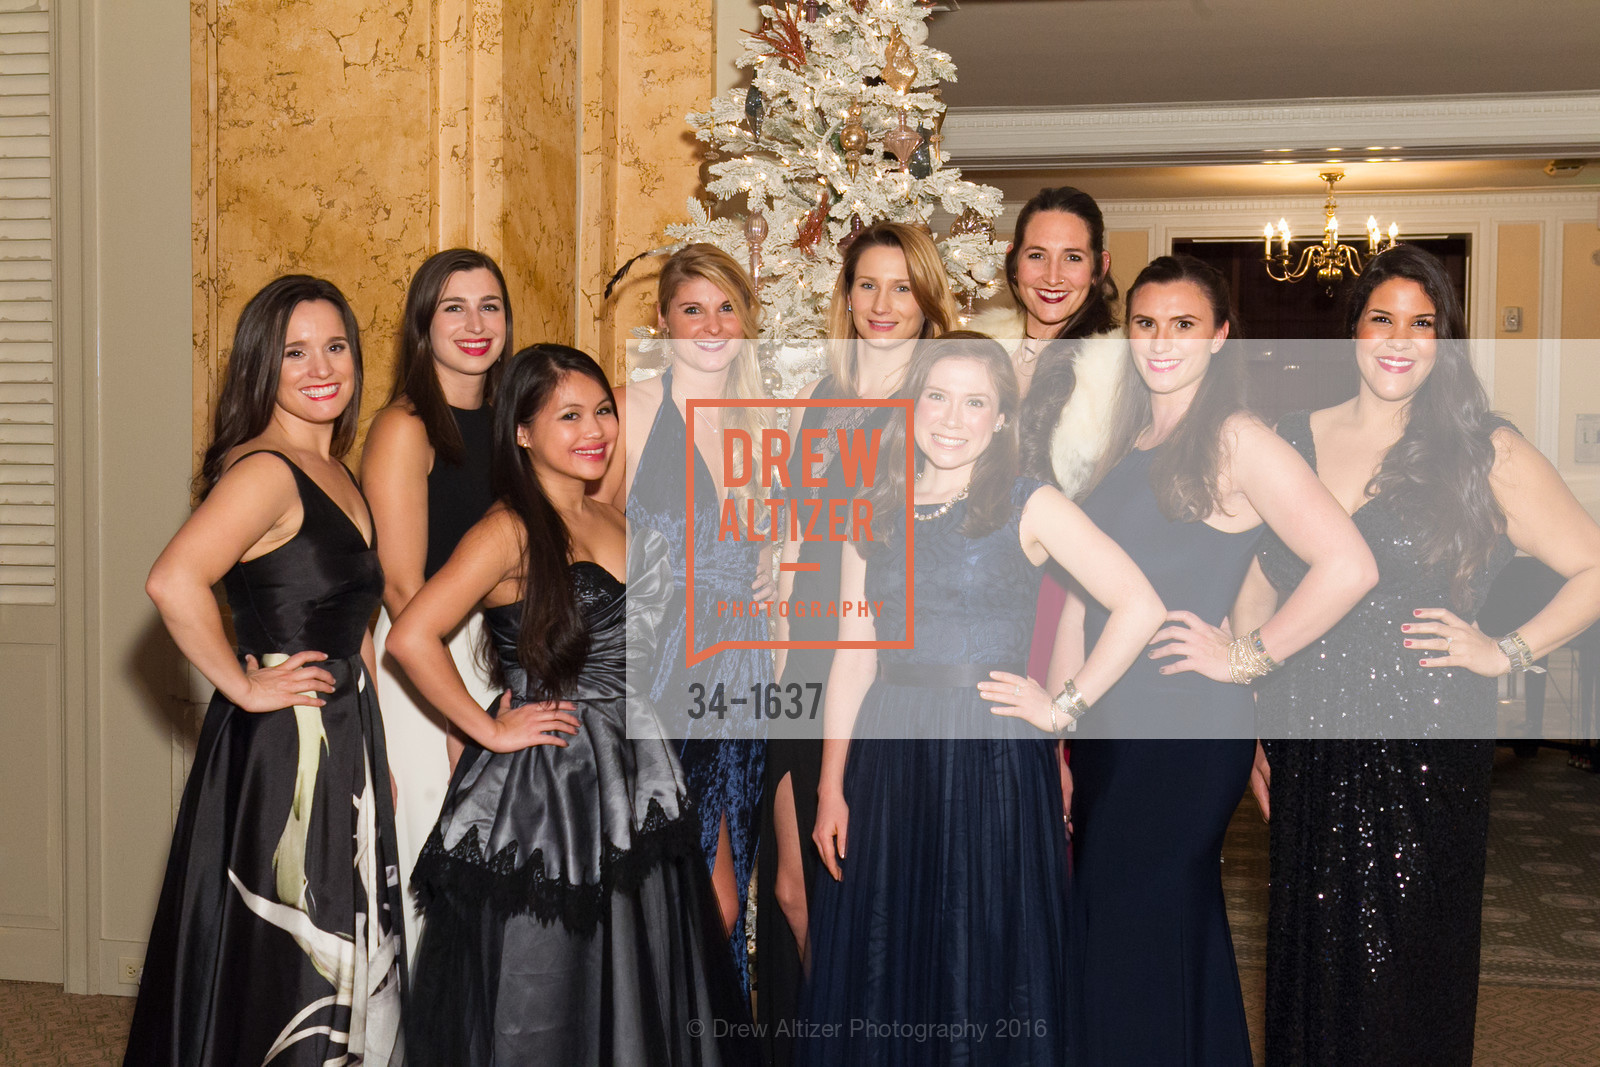 Libby Orrick, Julia Thompson, Melissa Floirendo, Lauren Gehring, Mara Giarratana Young, Danielle Schraner, Jaclyn Butler, Spinsters Holiday event, Metropolitan Club. 640 Sutter St, San Francisco, CA 94102, December 10th, 2016